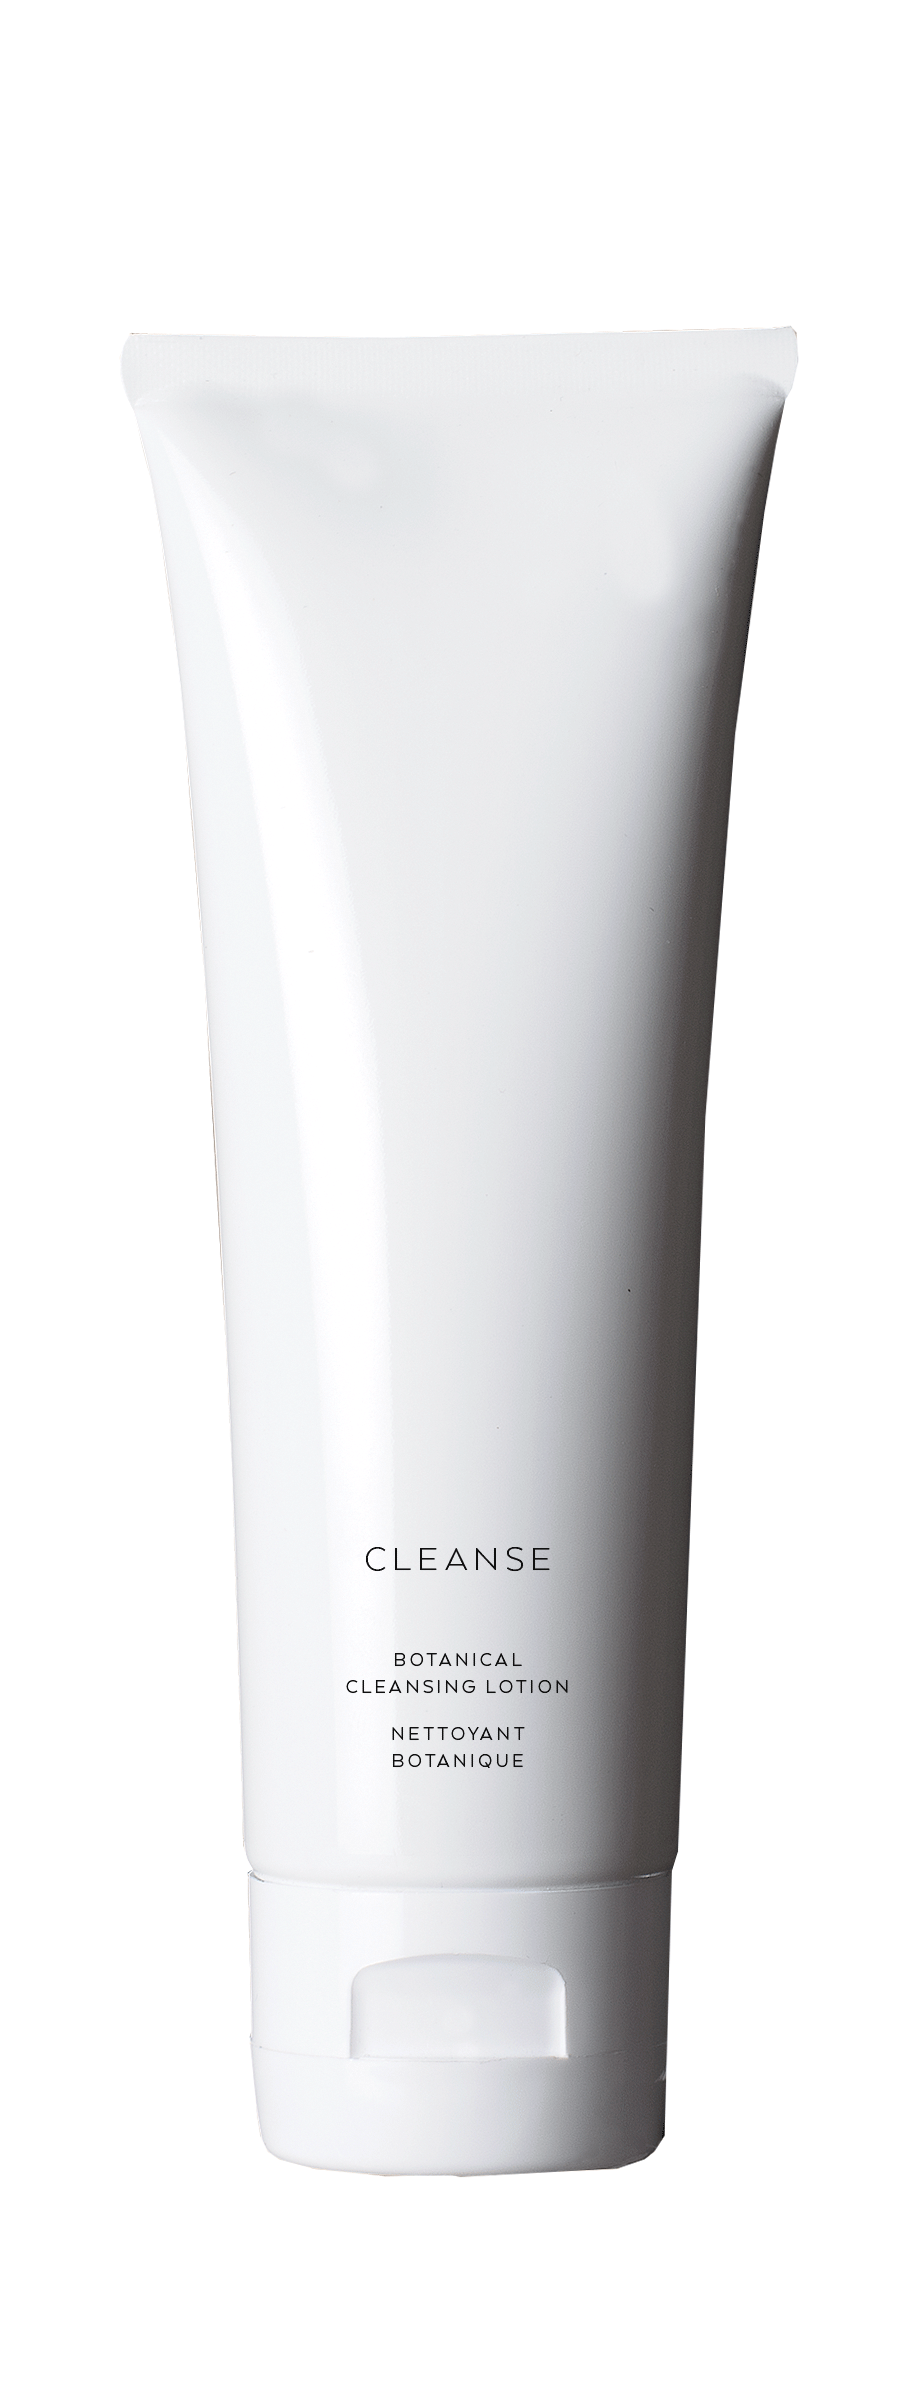 cleanse 240 ml